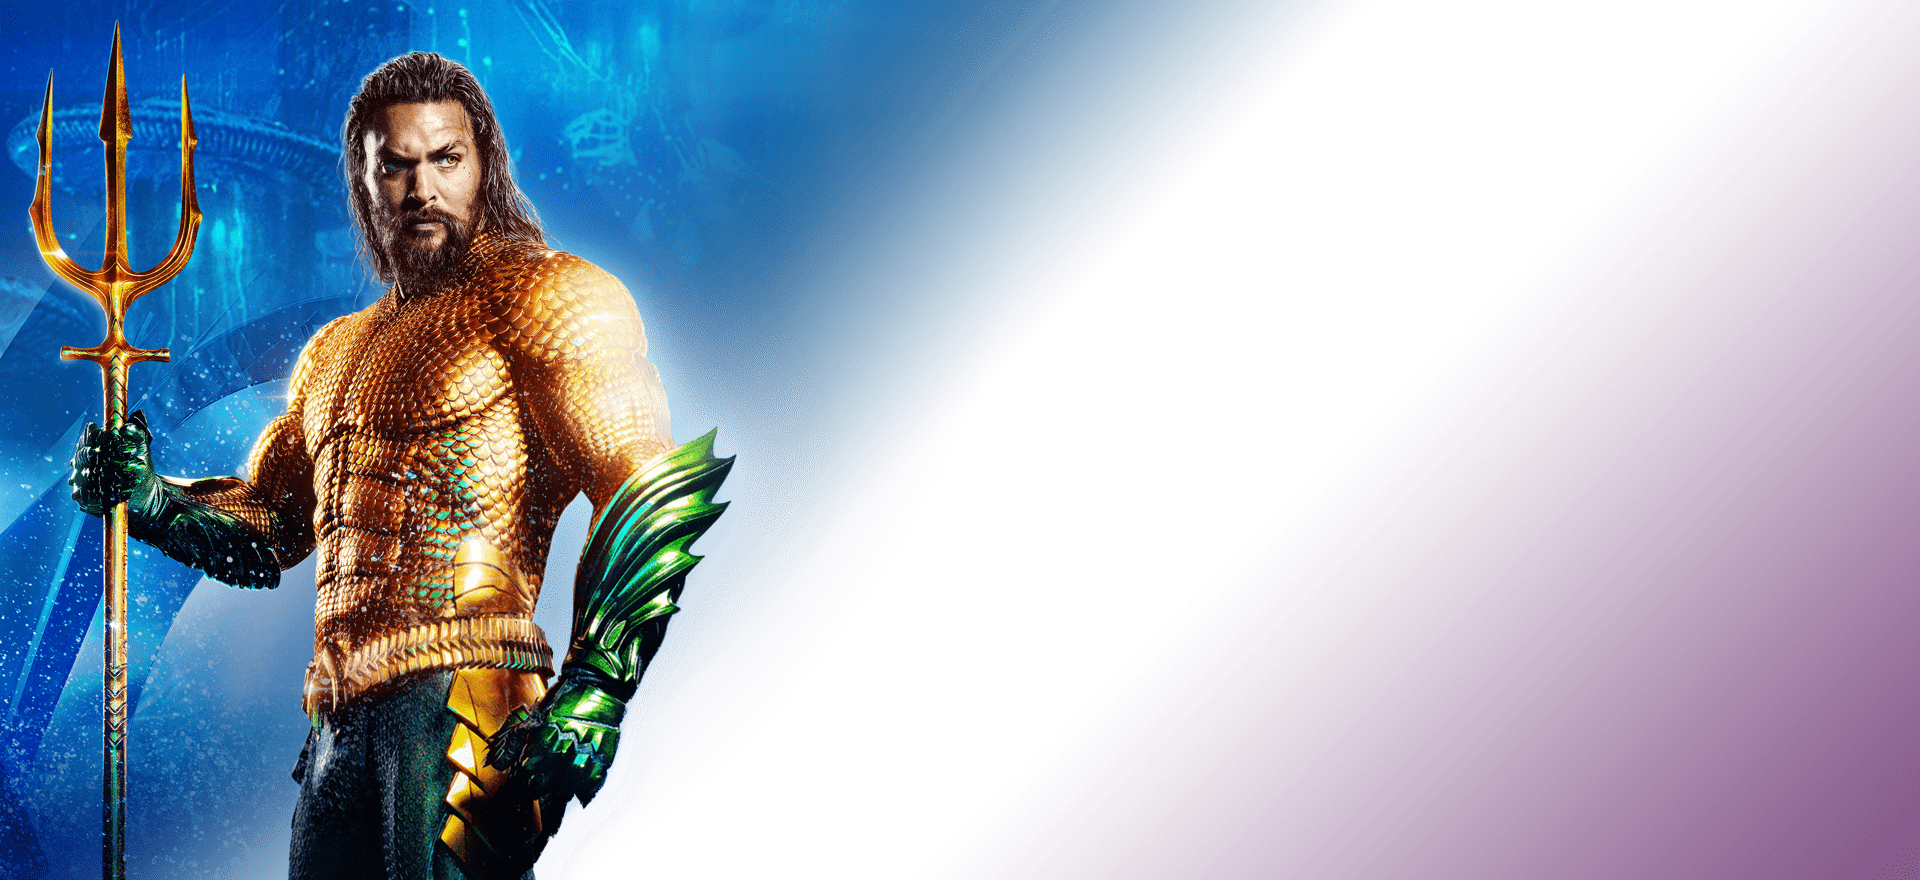 background for Aquaman card